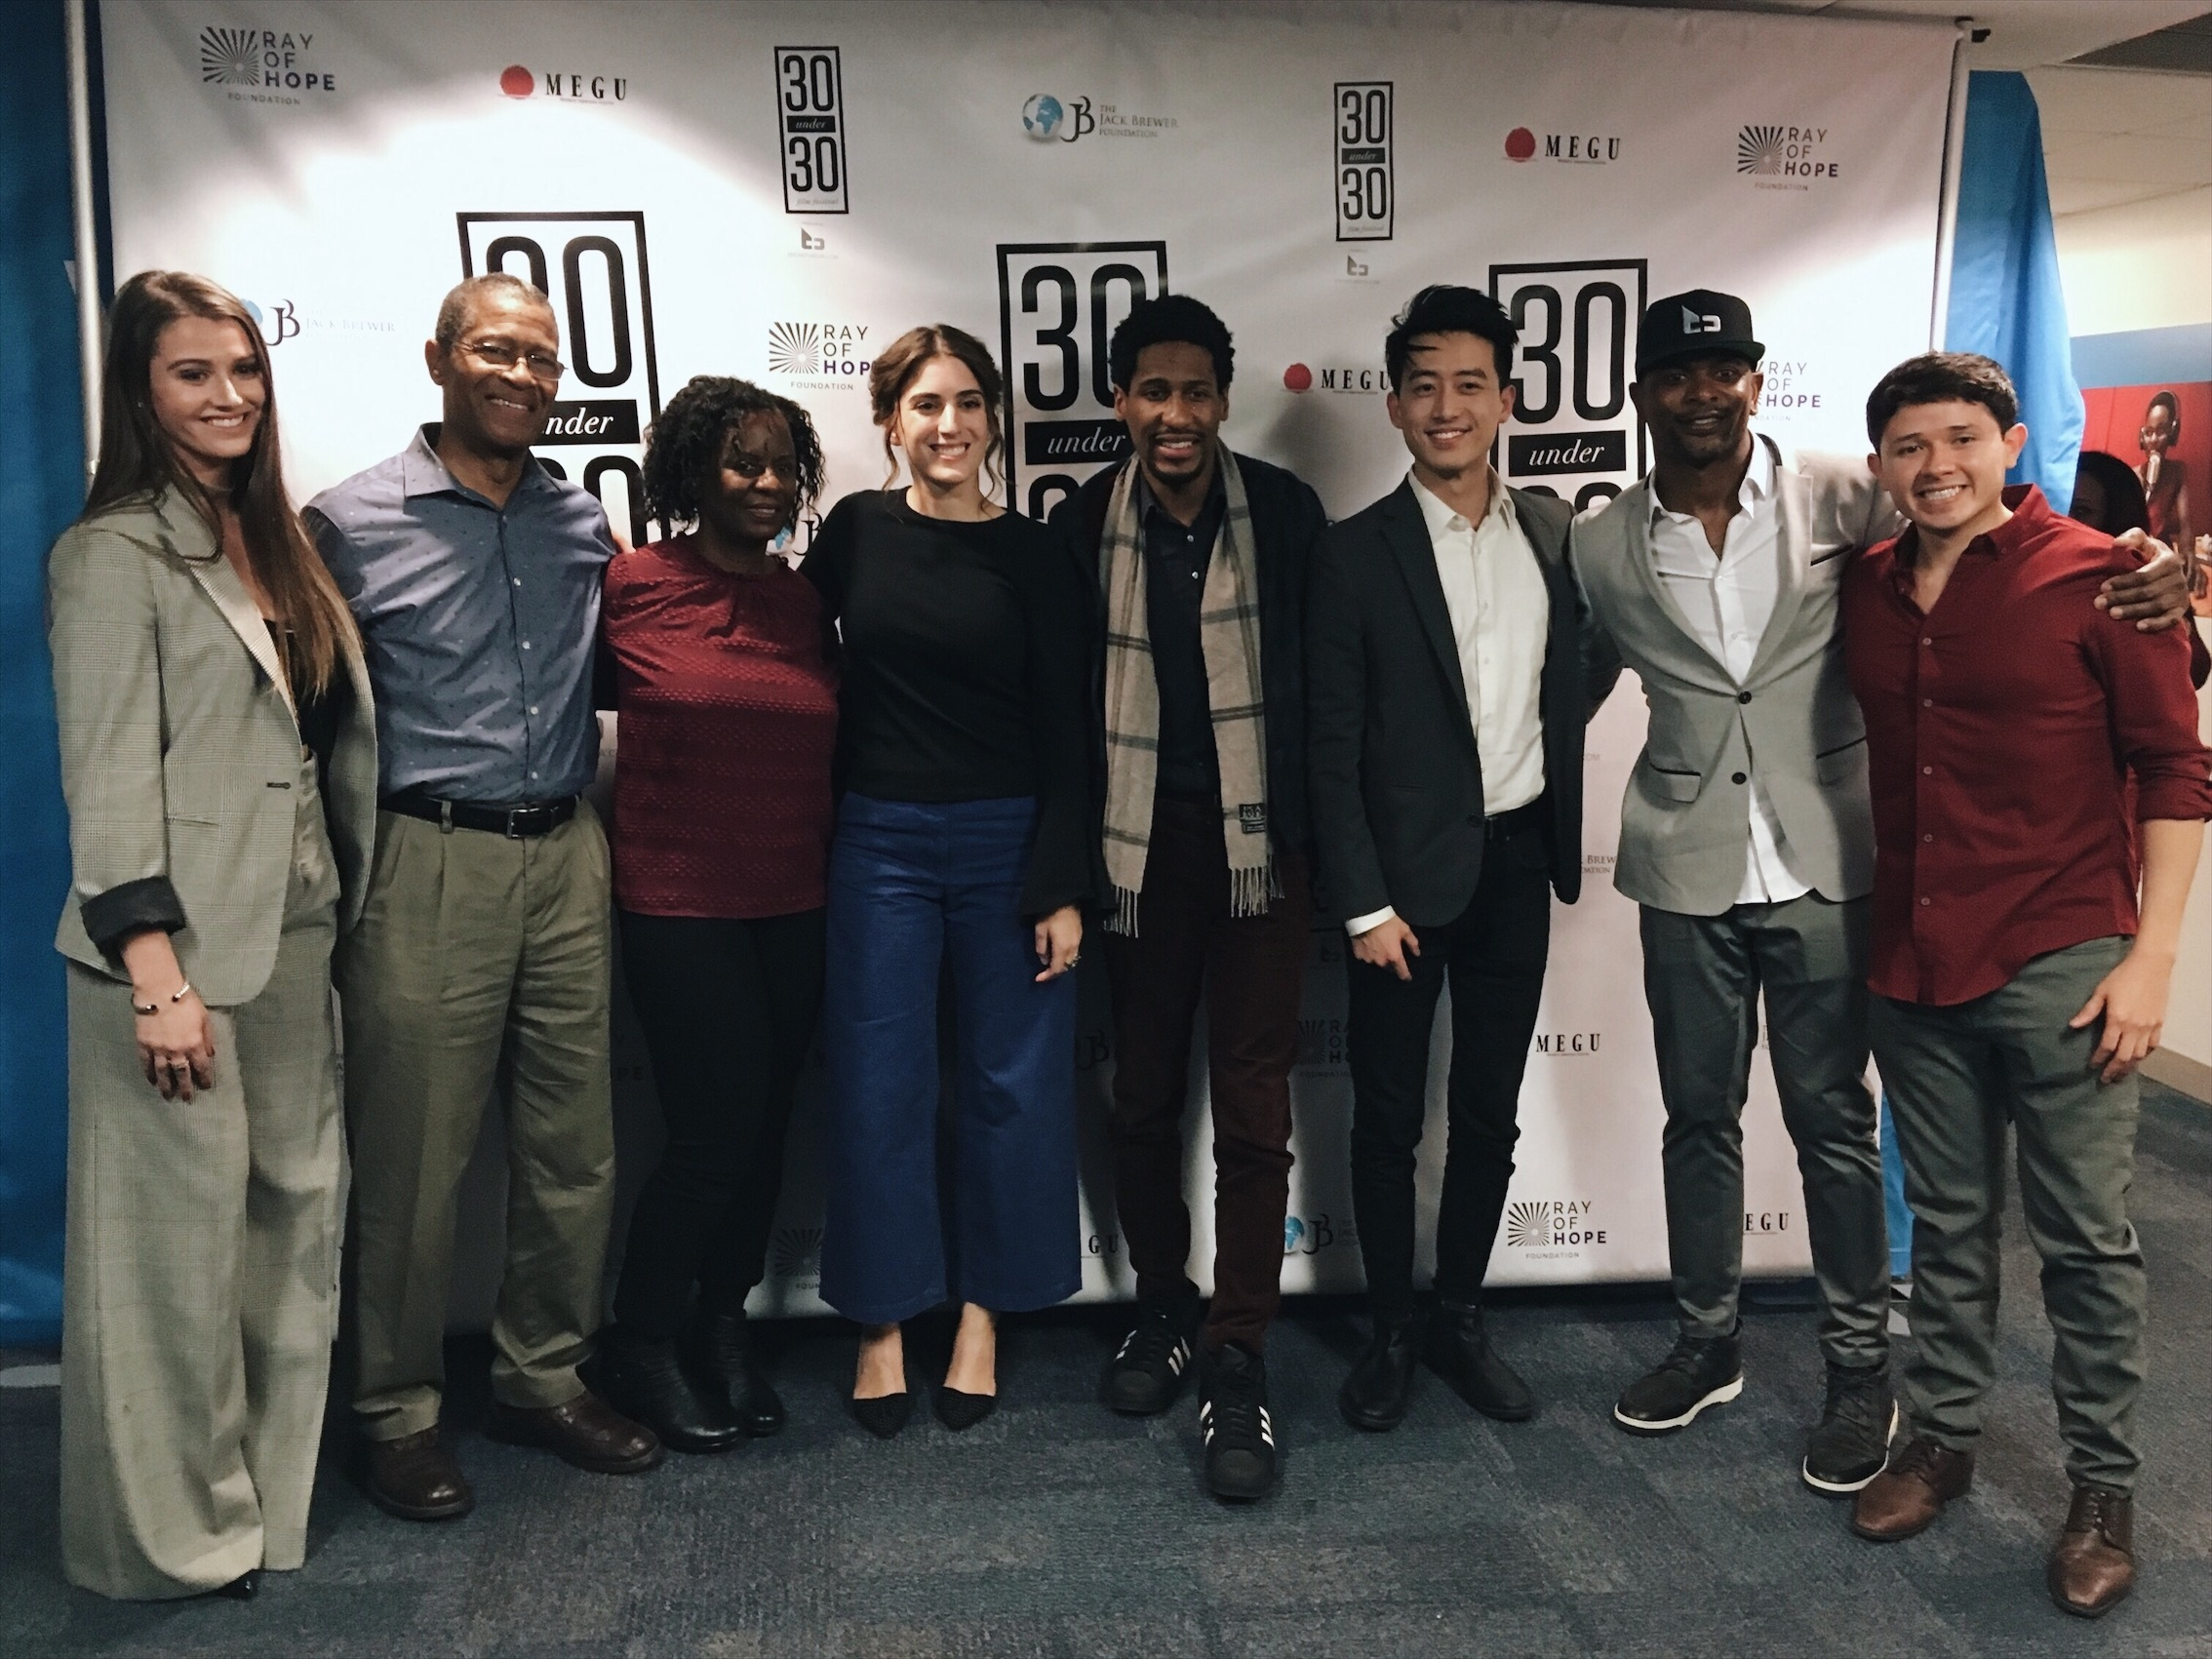 Left to right: 30Under30 Film Festival President  Courtney Baxter ,  Mr. & Mrs. Batiste ,  Suleika Jaouad of New York Times ,  Jon Batiste  of Late Show with Stephen Colbert, Artistic Director  CheHo Lam ,  Jack Brewer  of Brewer Media, 30Under30 Film Festival founder  Sebastian Rea at  Opening Ceremony of 30Under30 Film Festival at UN Women Headquarters in New York City